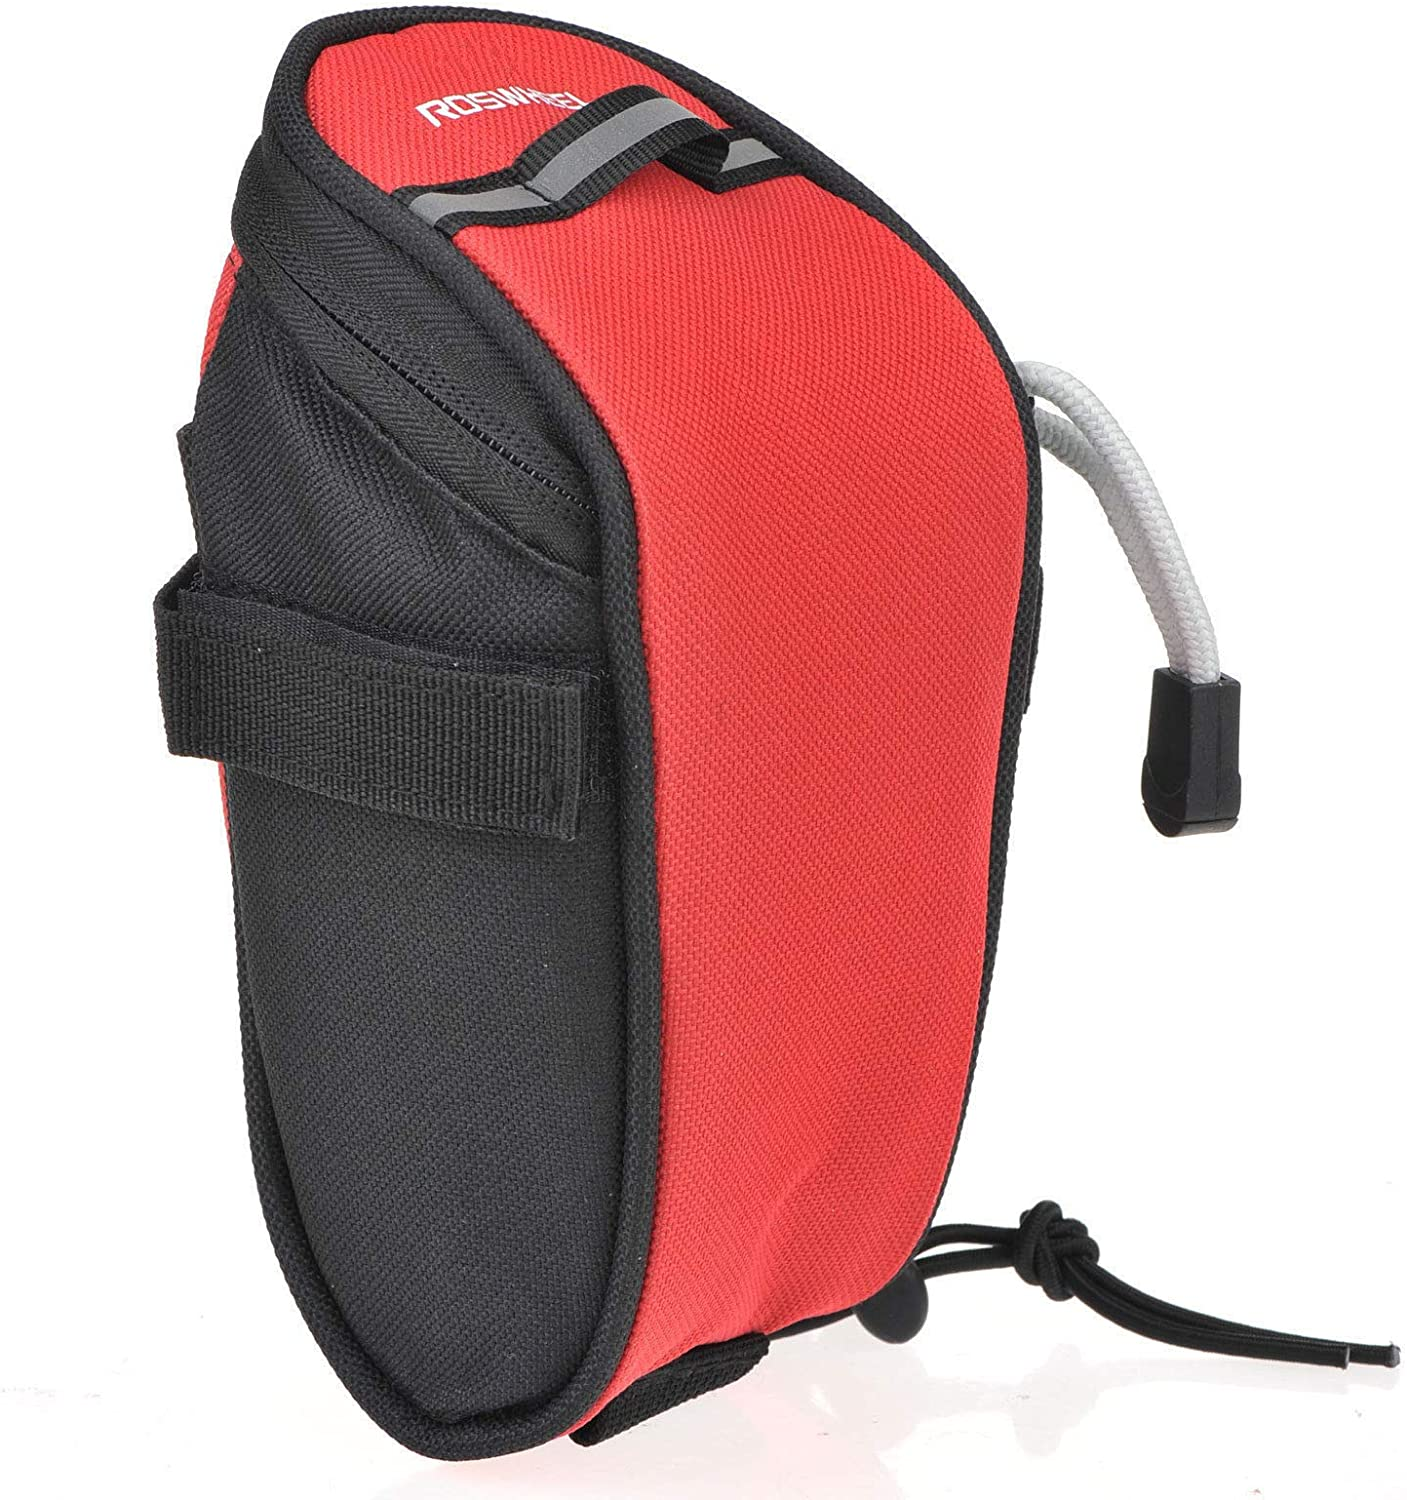 SunTrade Bicycle Saddle Seat Bag Tail Rear Pouch Strap-On Storage Outdoor Bike Bag